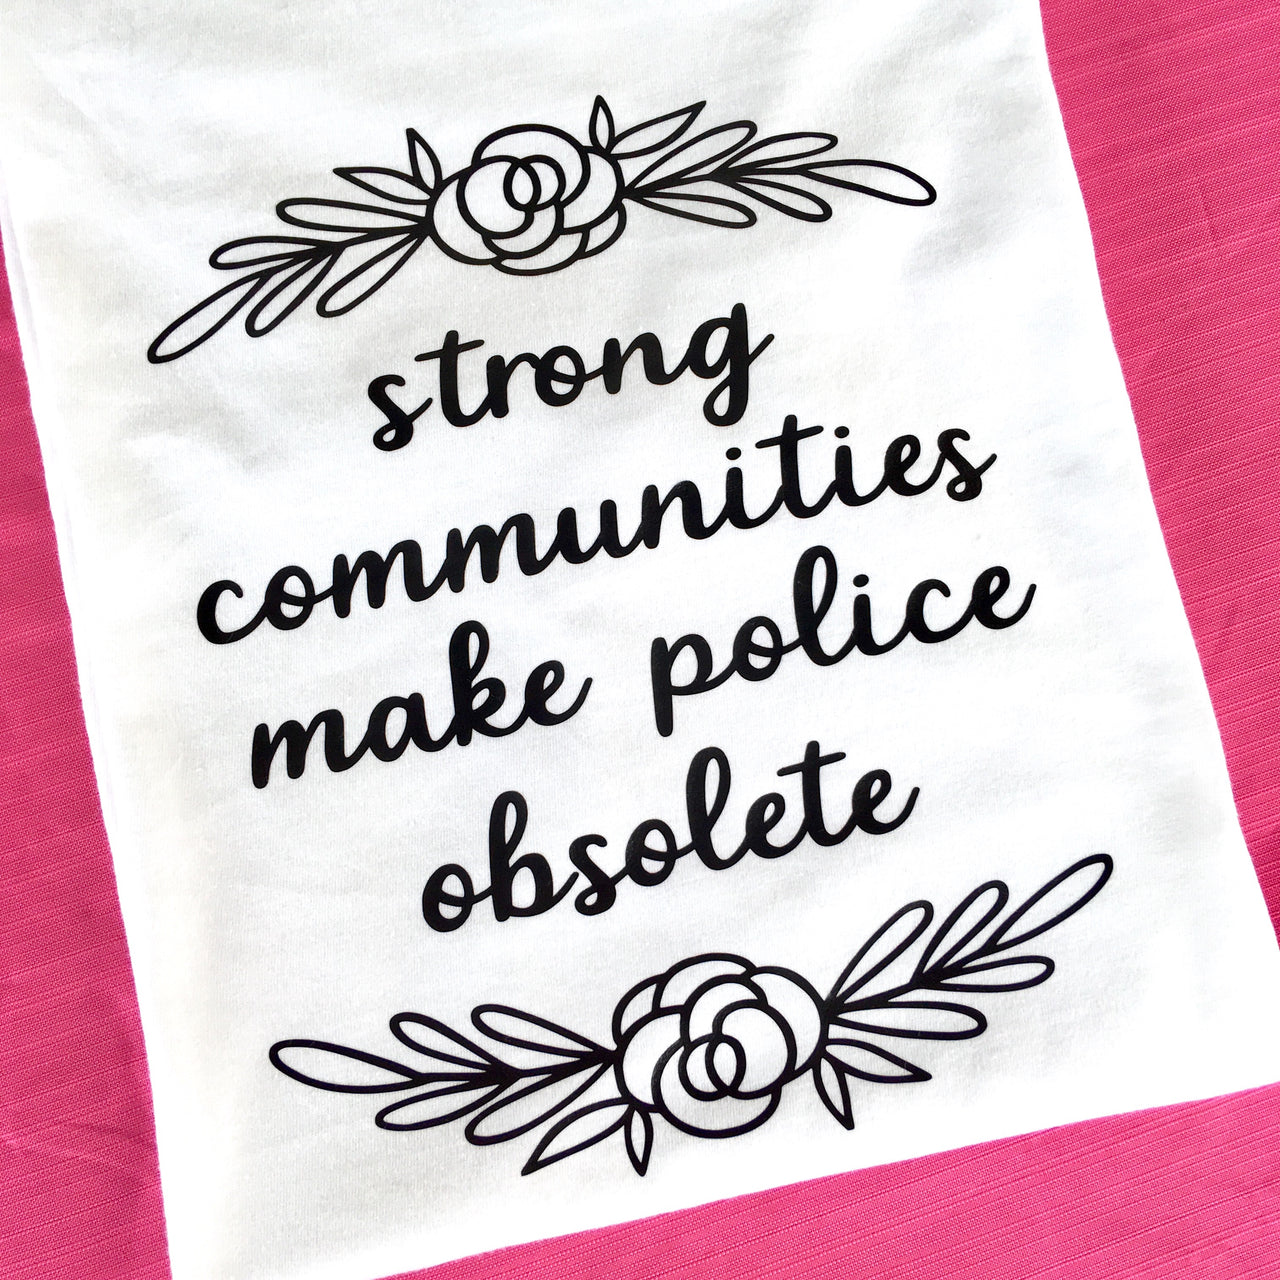 Strong communities make police obsolete (white unisex tee) - Radical Buttons